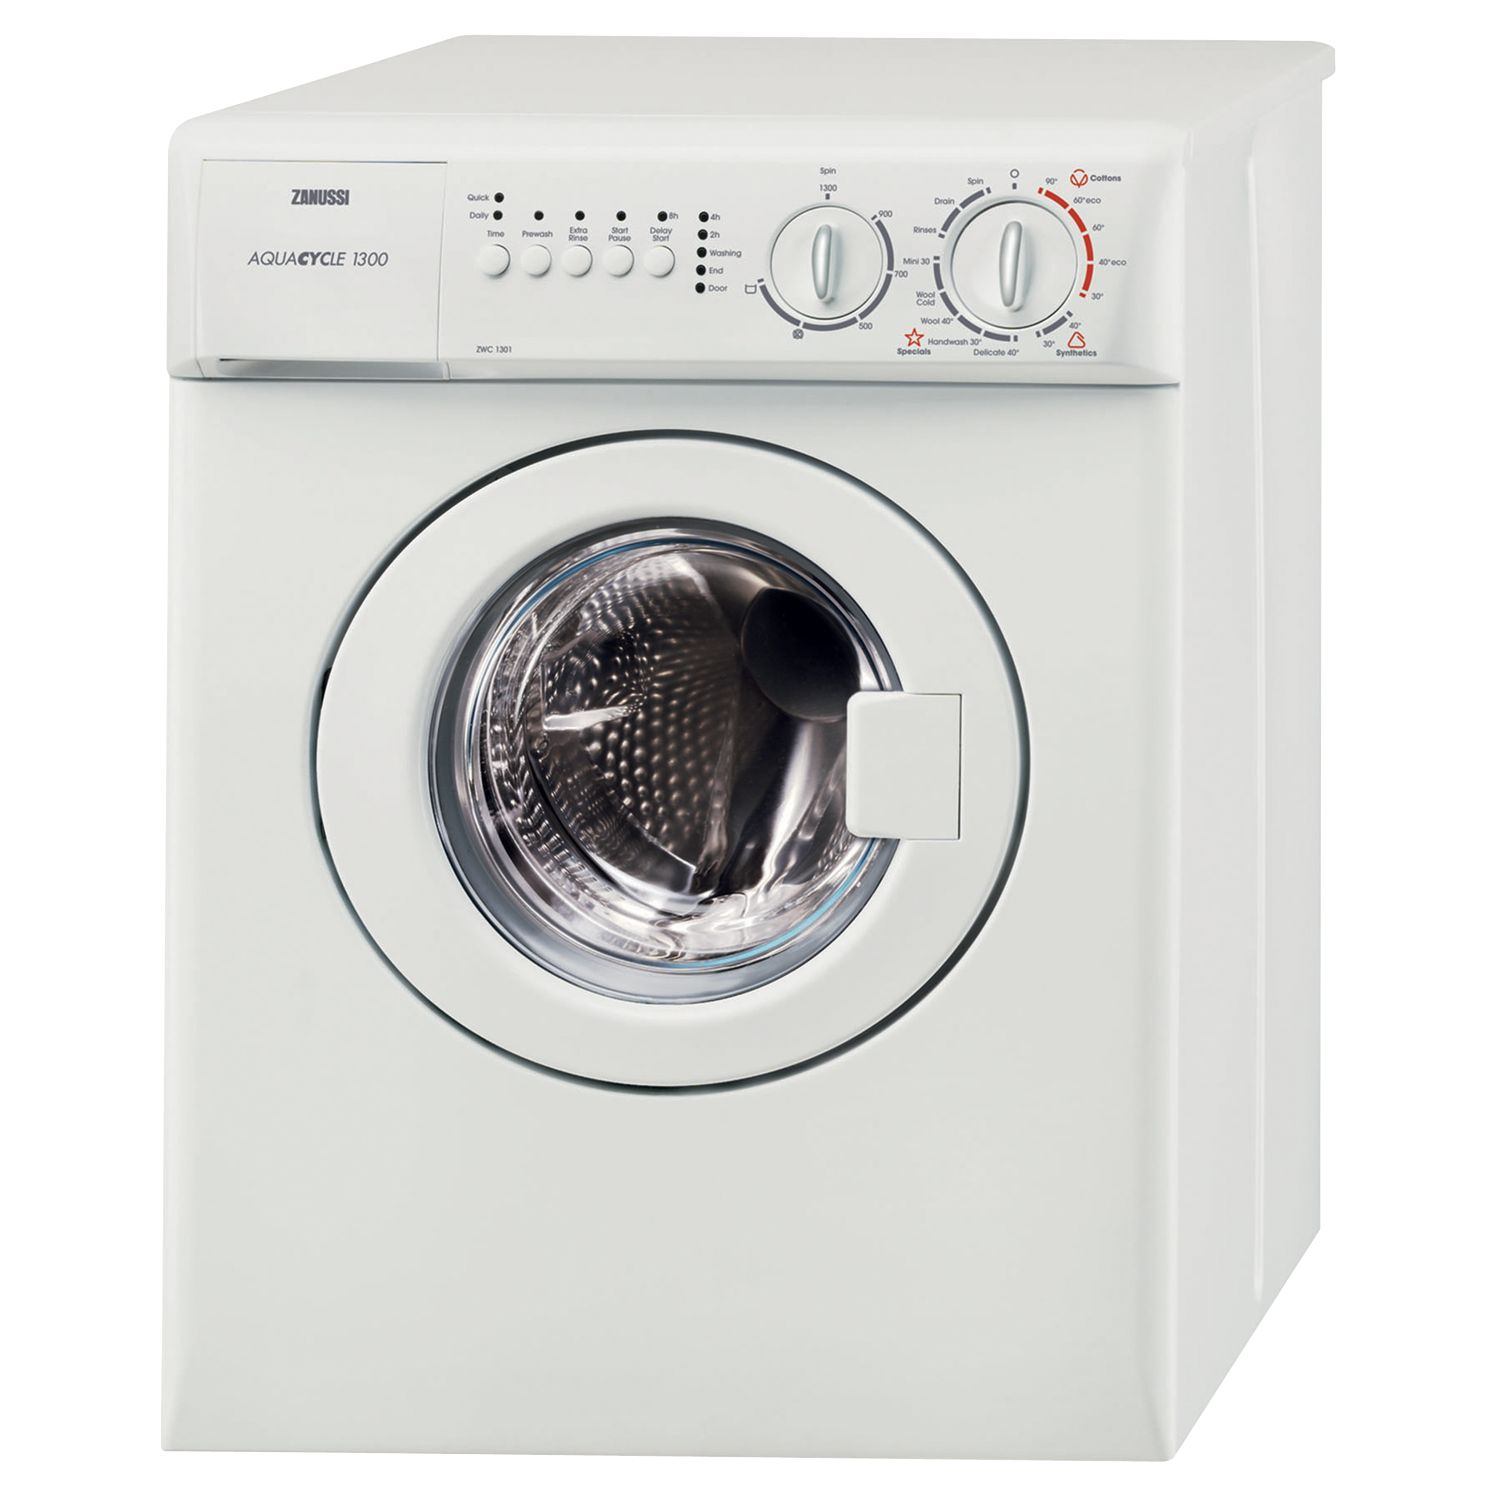 Zanussi Zanussi ZWC1301W Compact Freestanding Washing Machine, 3kg Load, A Energy Rating, 1300rpm Spin, White